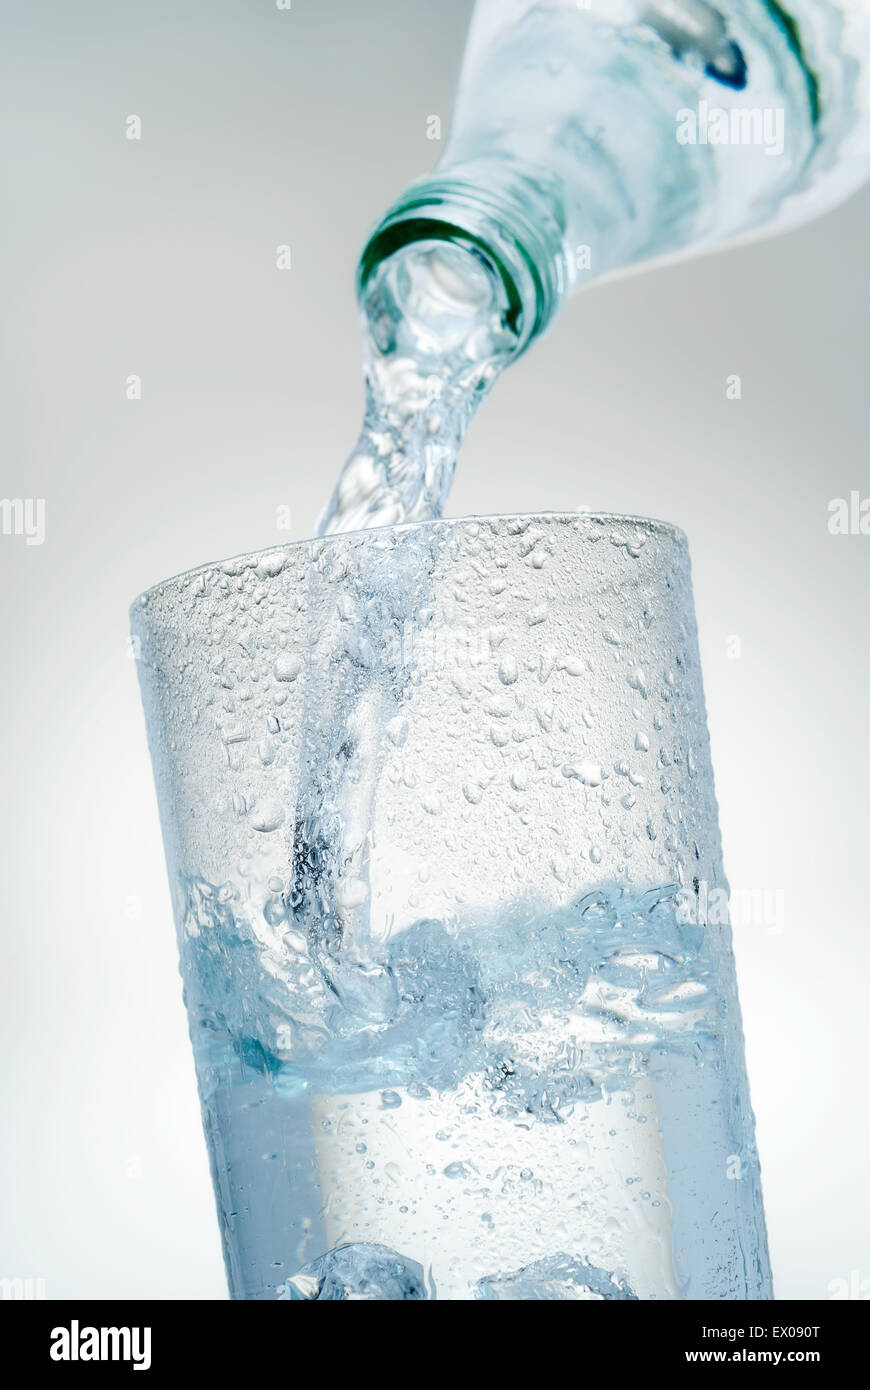 Mineral water is poured into a glass. - Stock Image